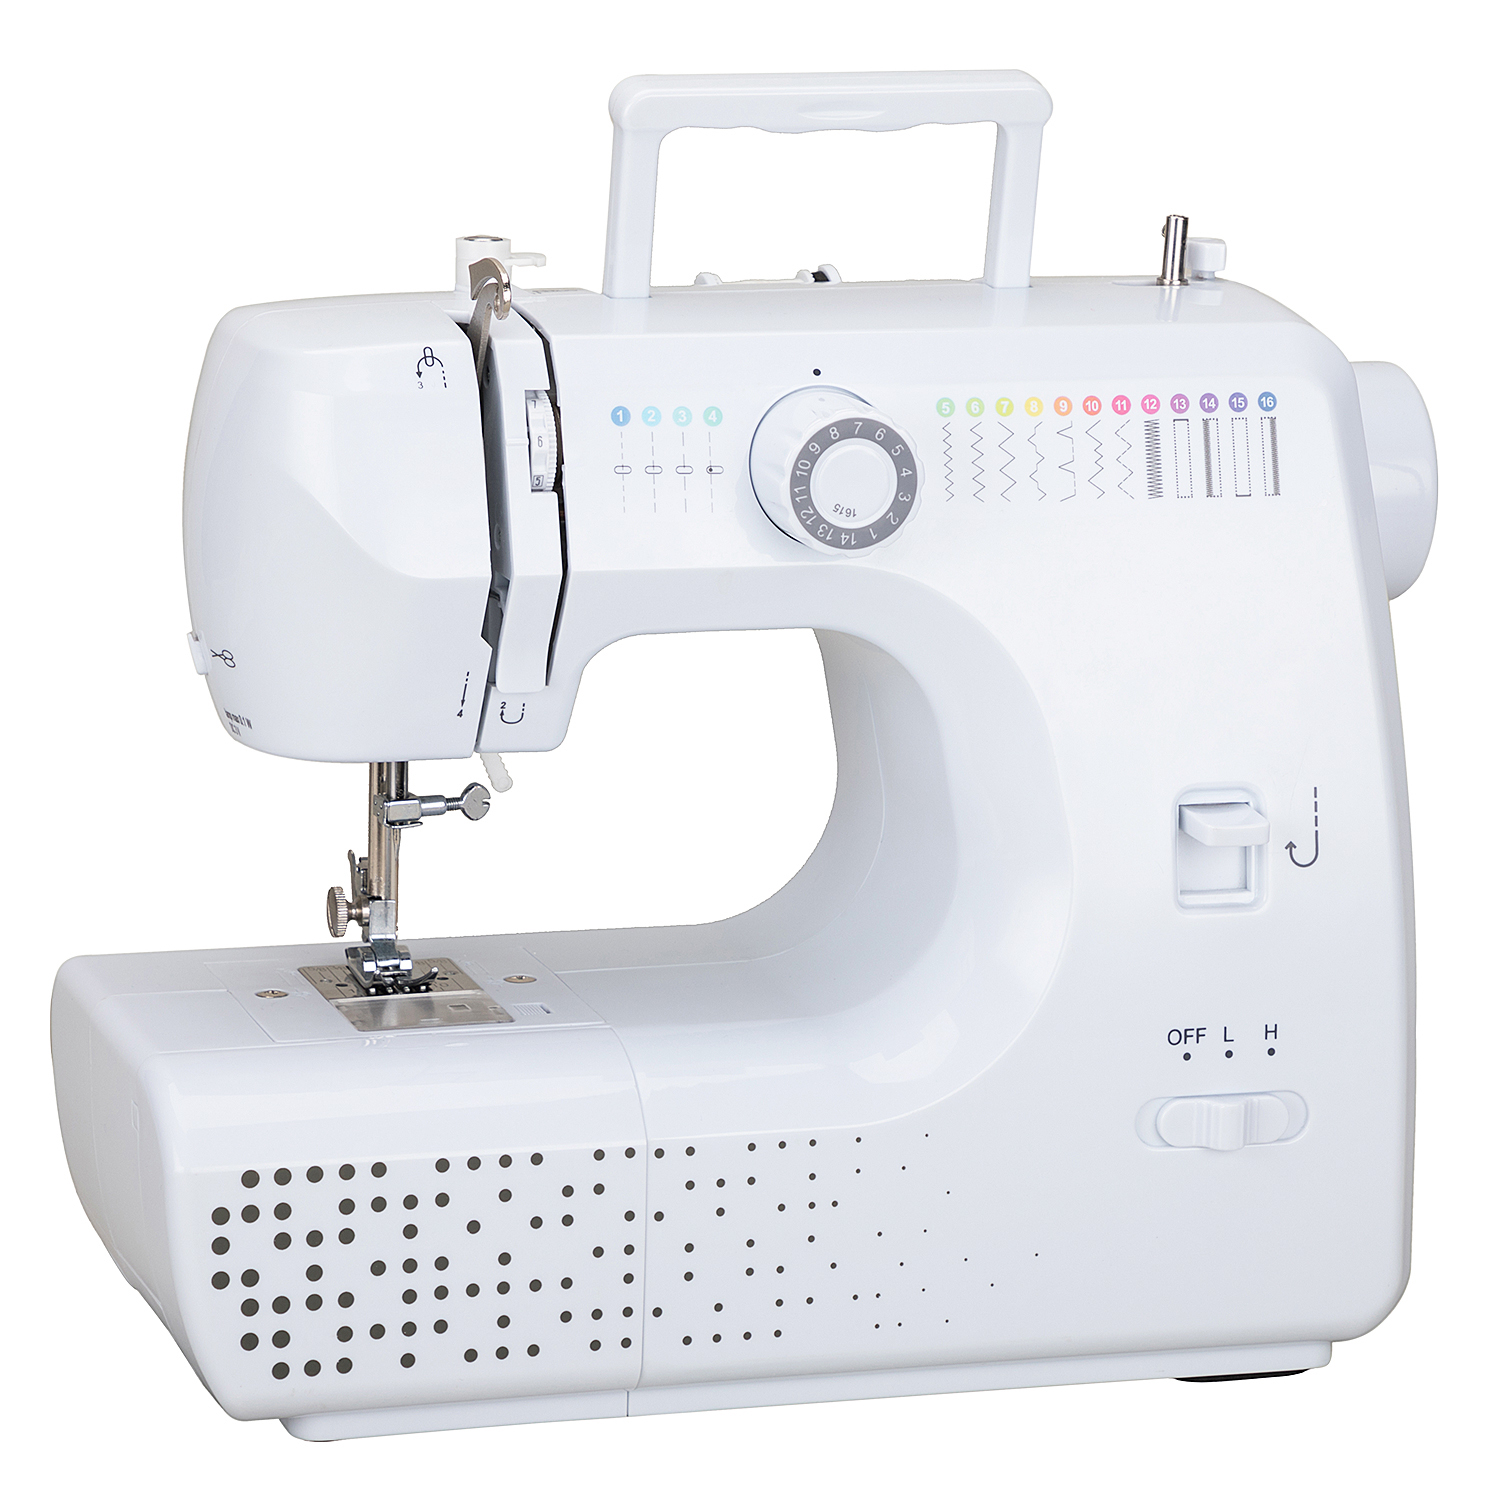 FHSM-702 household automatic pocket shirt china sewing machine with CE